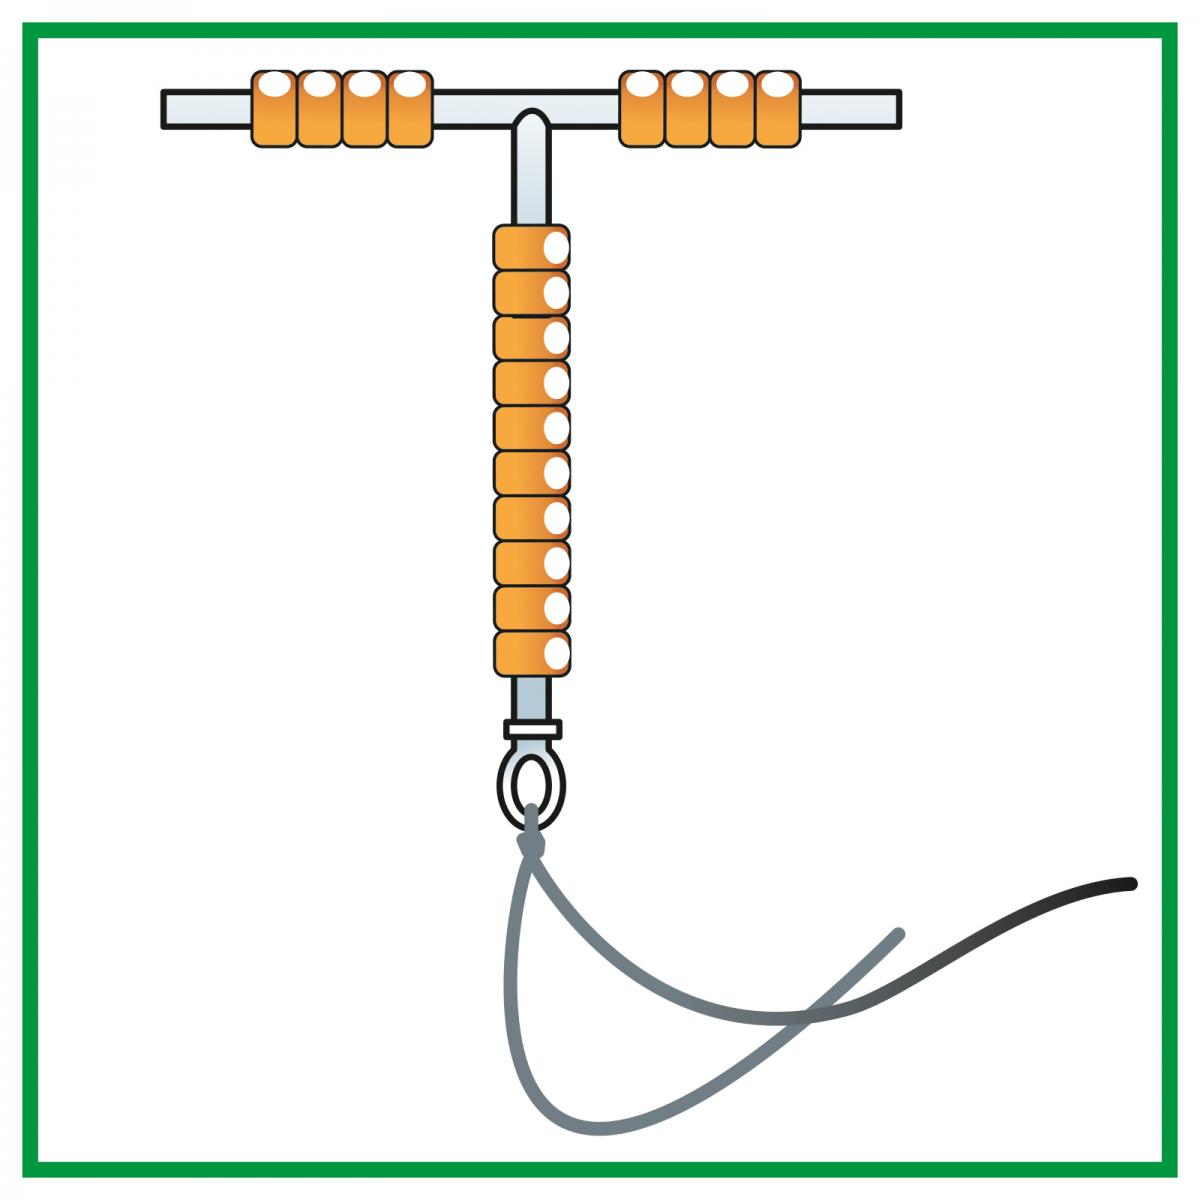 Family Planning - Intrauterine device  - 01 - Kyrgyz Republic